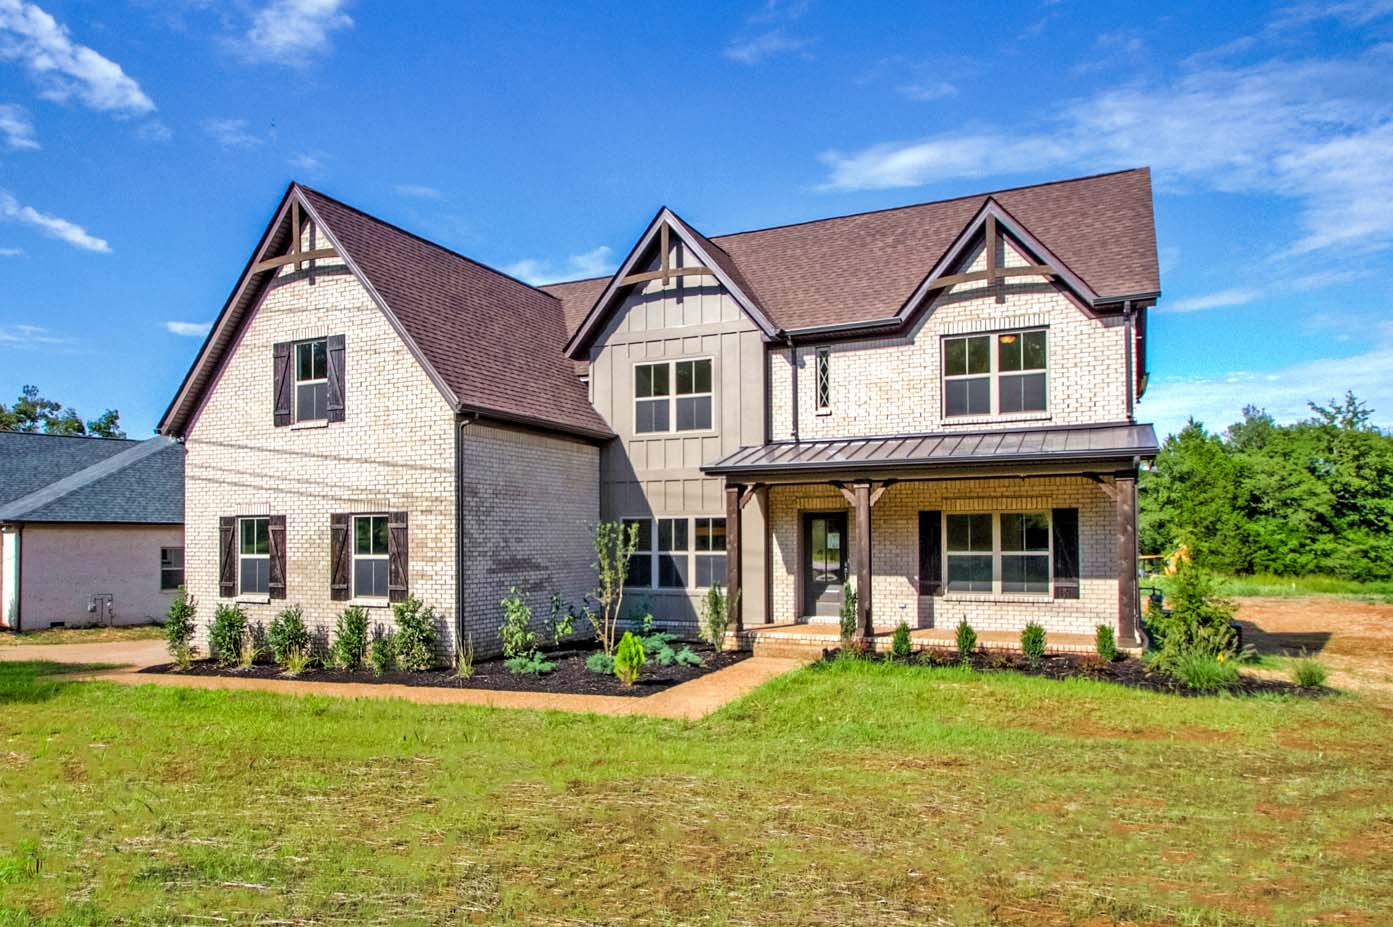 New Homes near Nashville with open floor plan